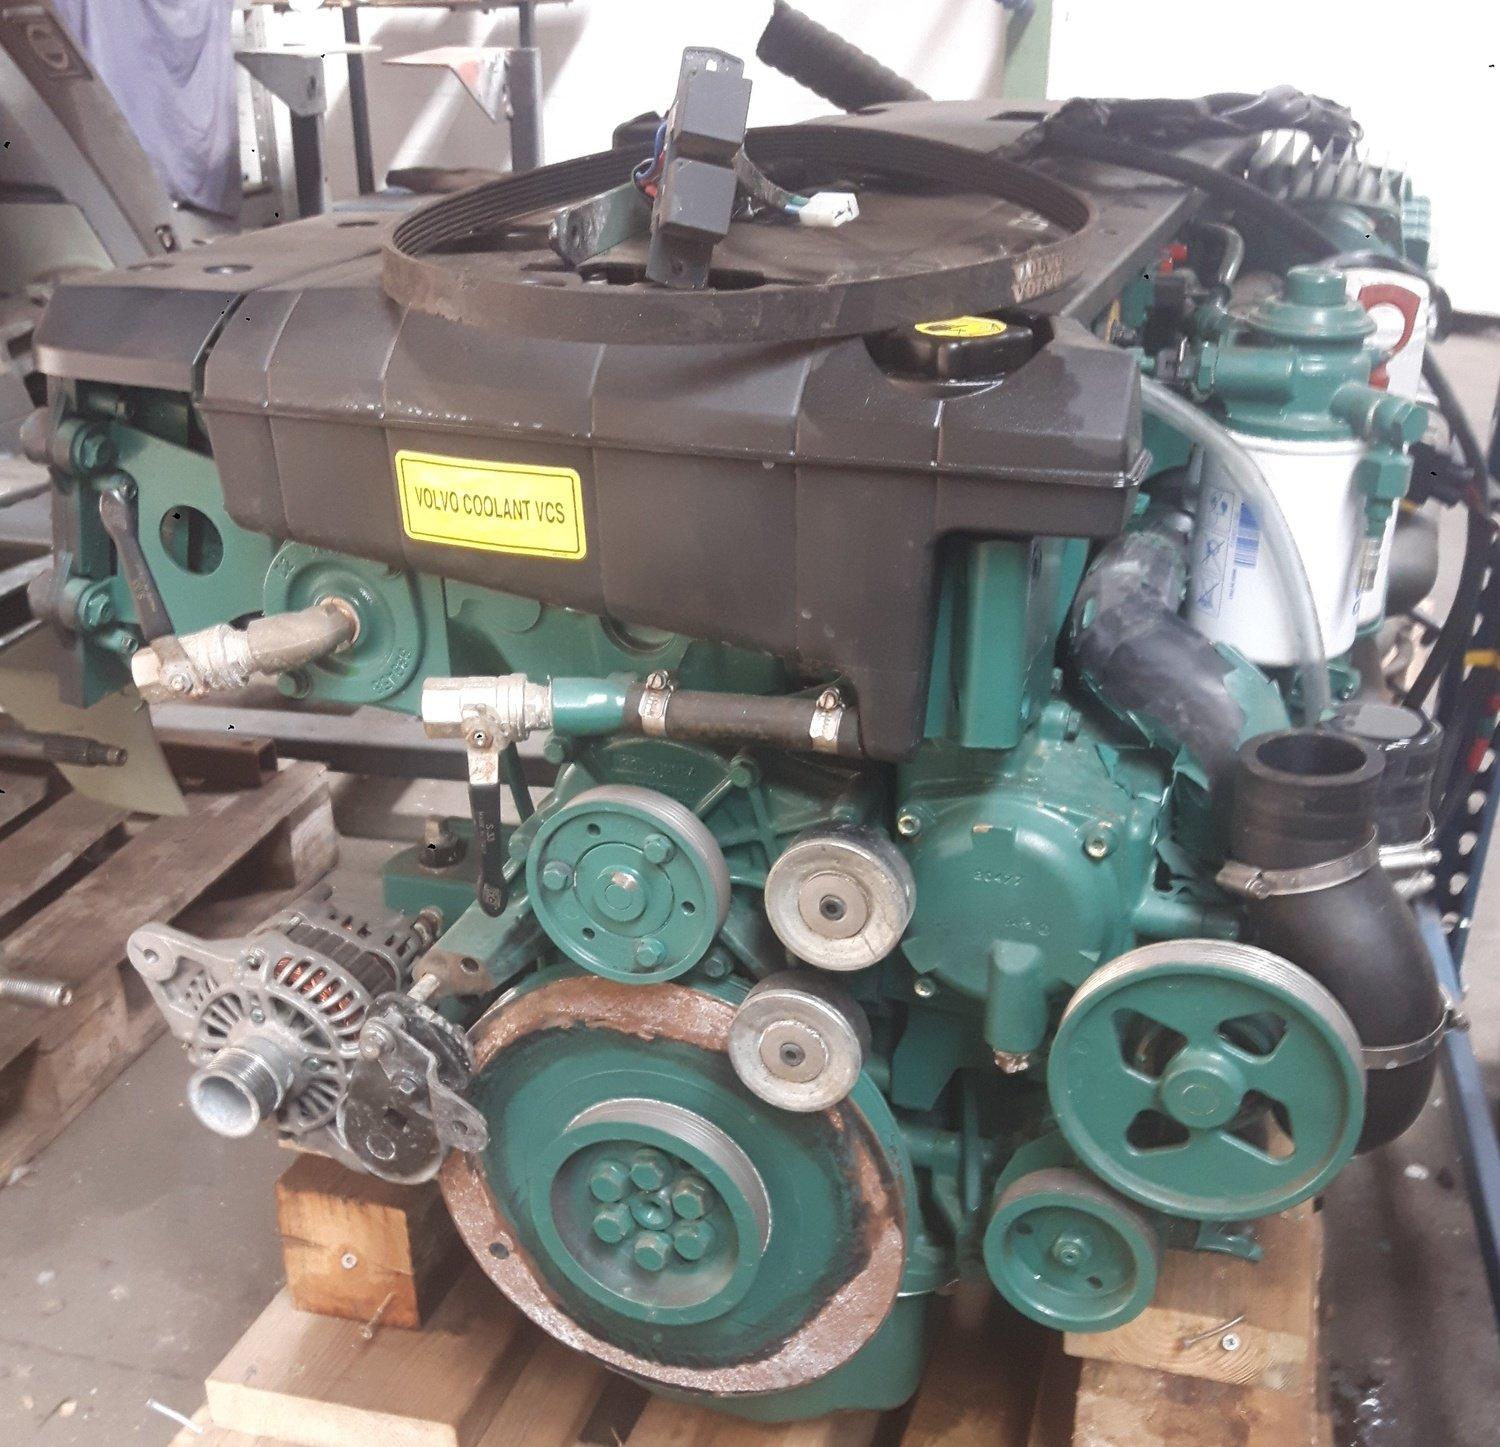 Volvo Penta D6-330 inboard diesel engine in good condition coming in on Inboard Marine Engines NOT YET FOR SALE